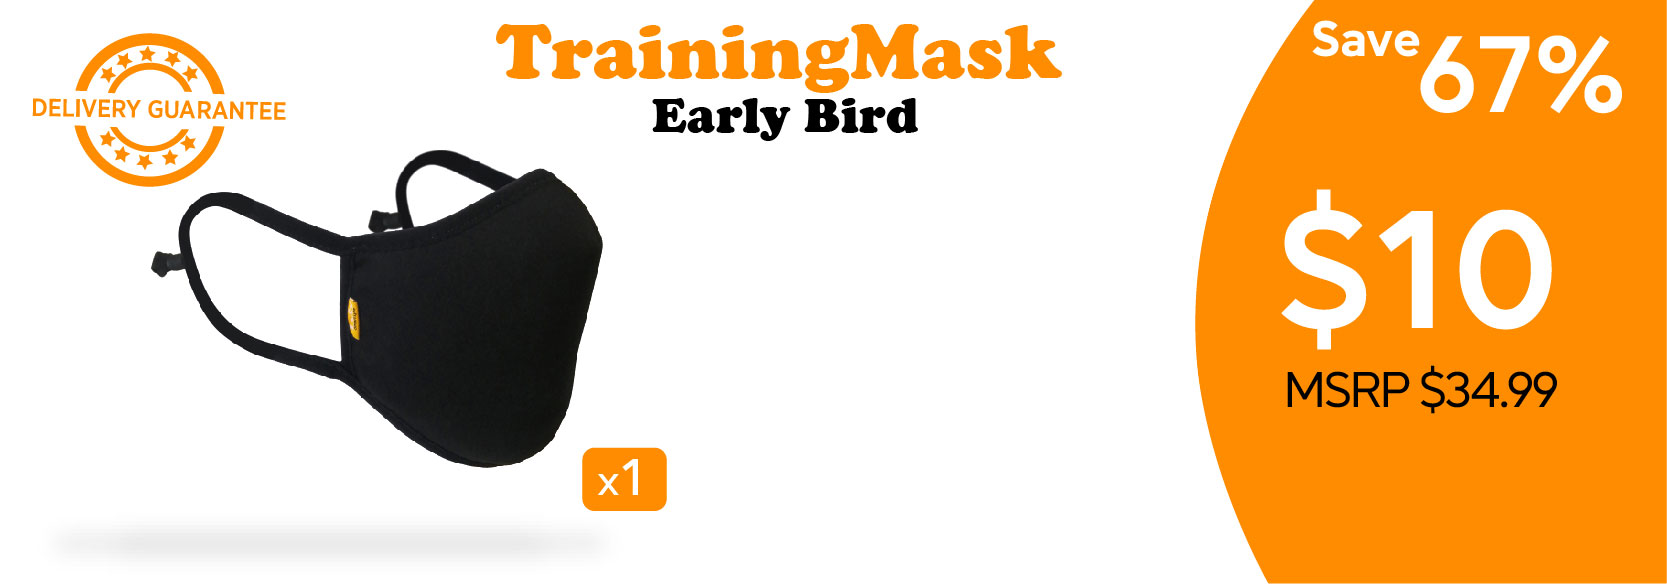 perk posters_Training Mask Early Bird